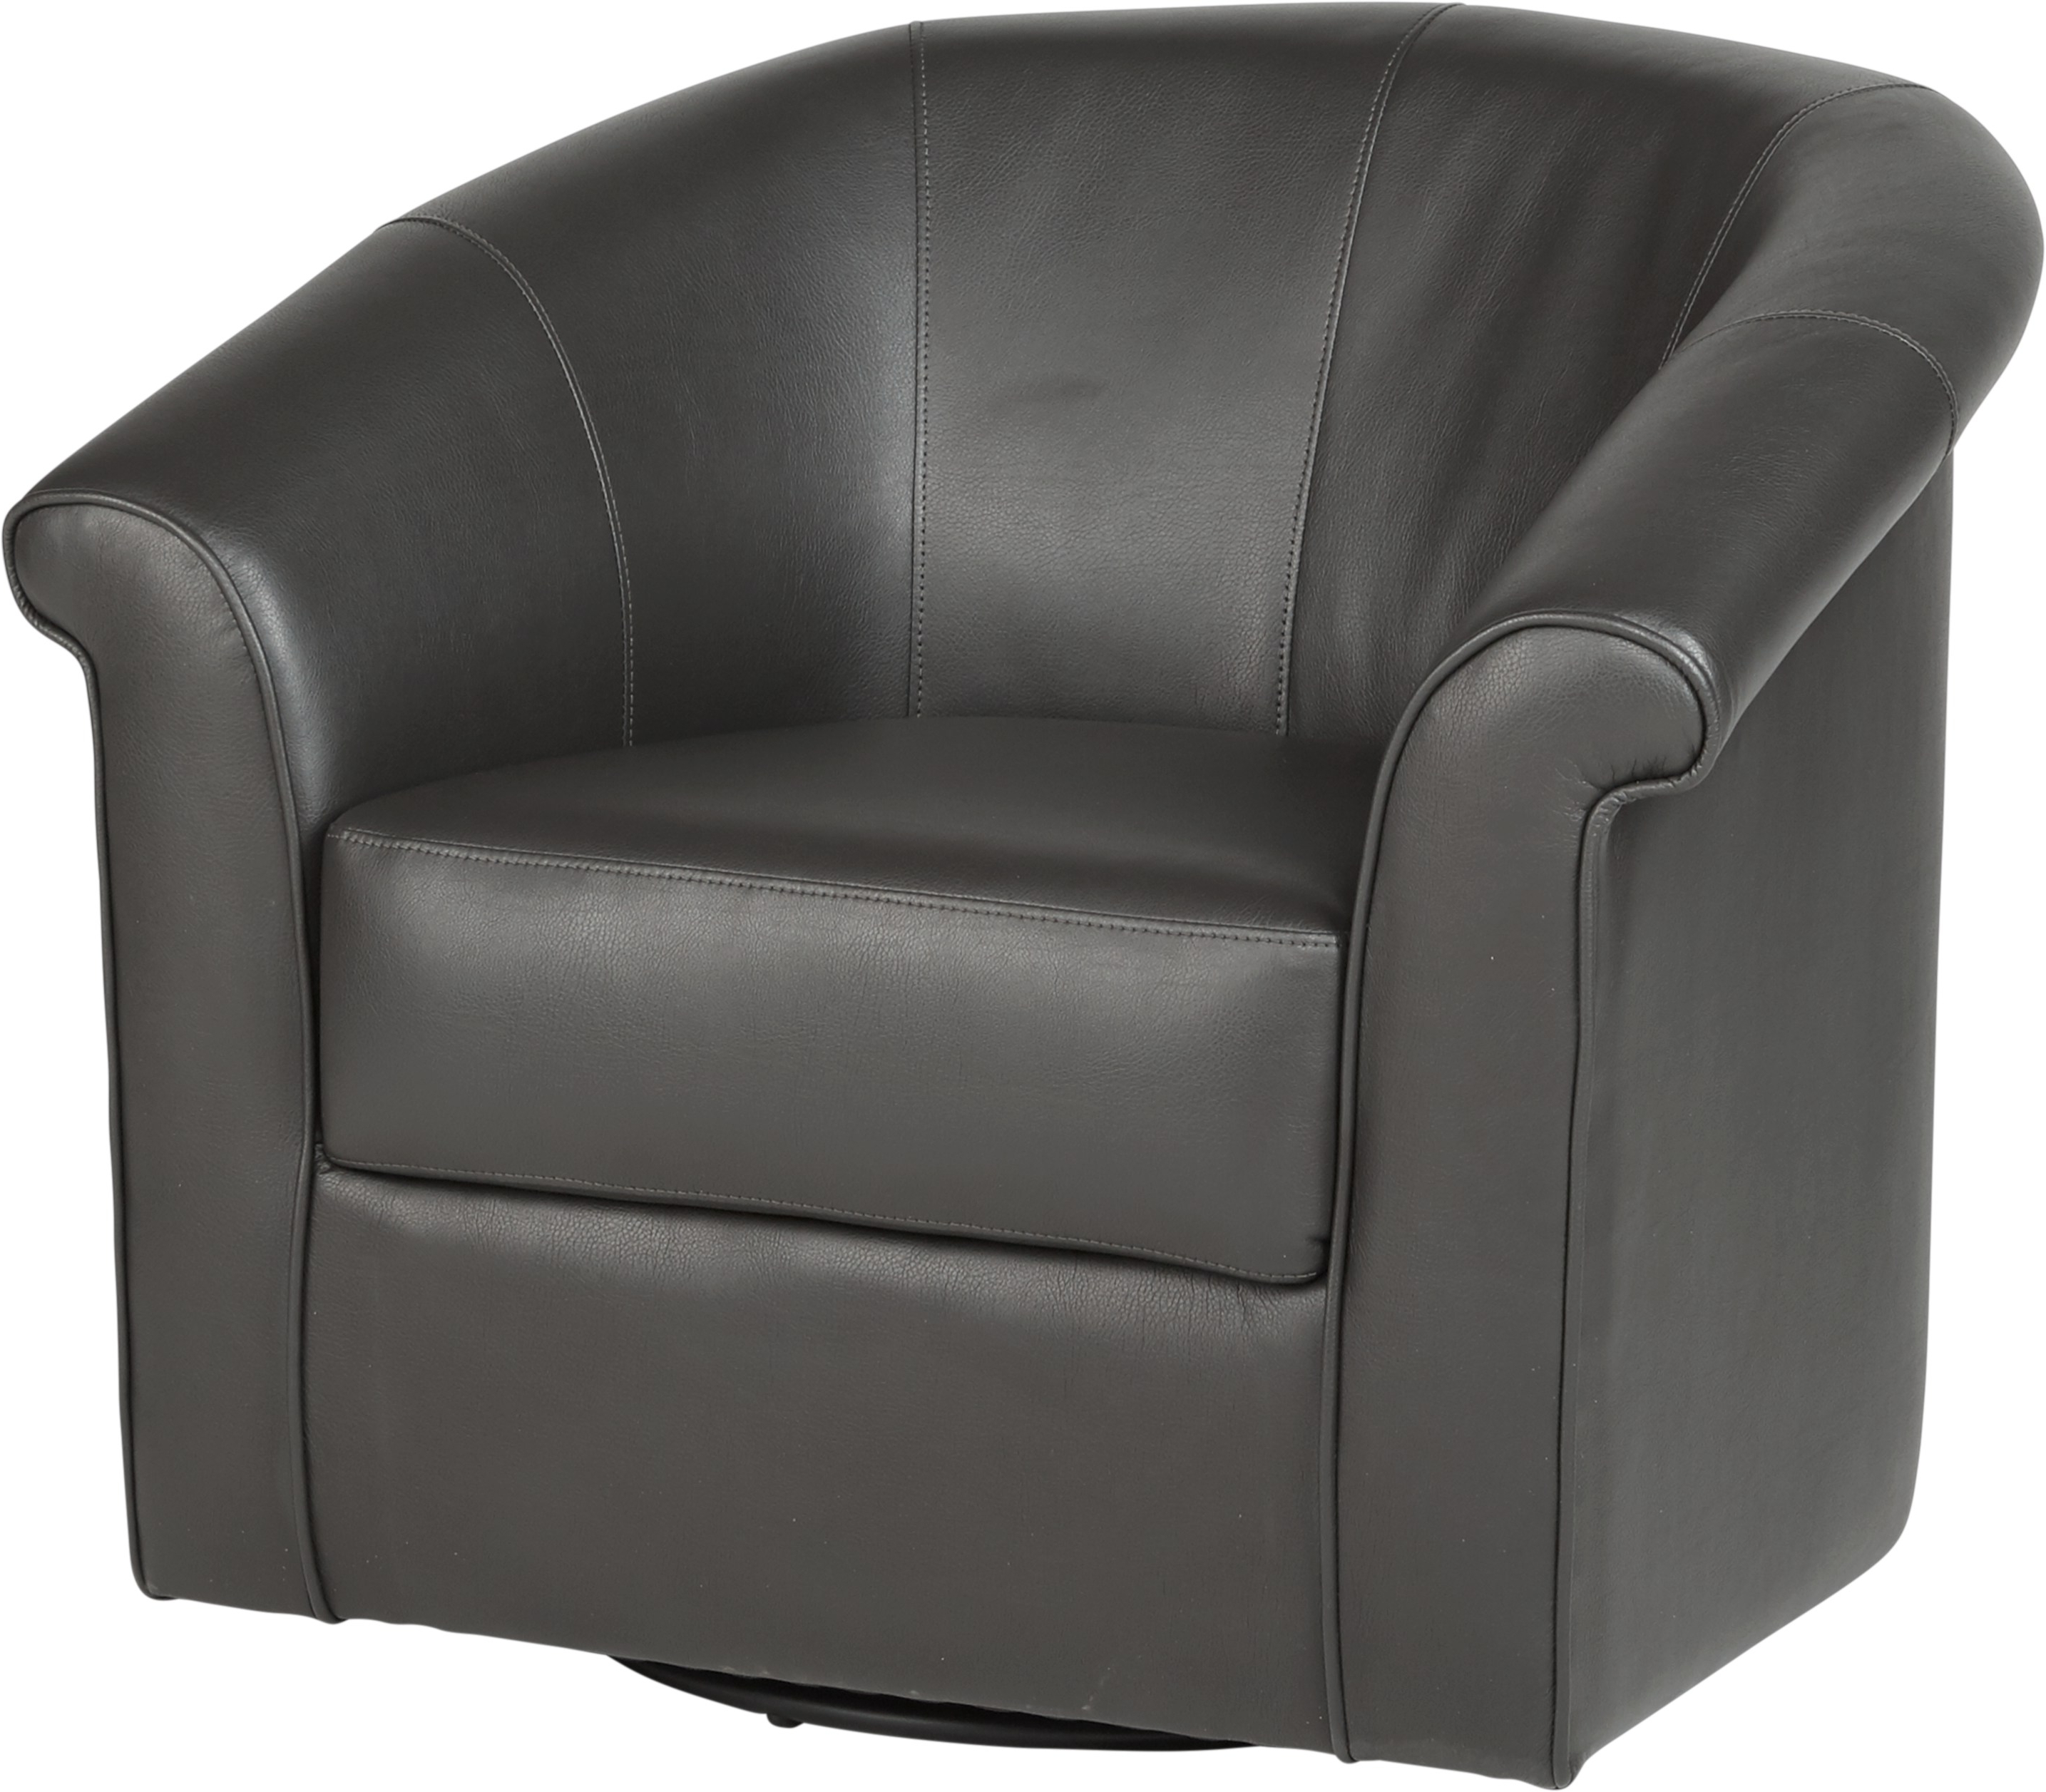 Most Recent Benning Charcoal Swivel Chair – Chairs (Black) Within Charcoal Swivel Chairs (View 10 of 20)